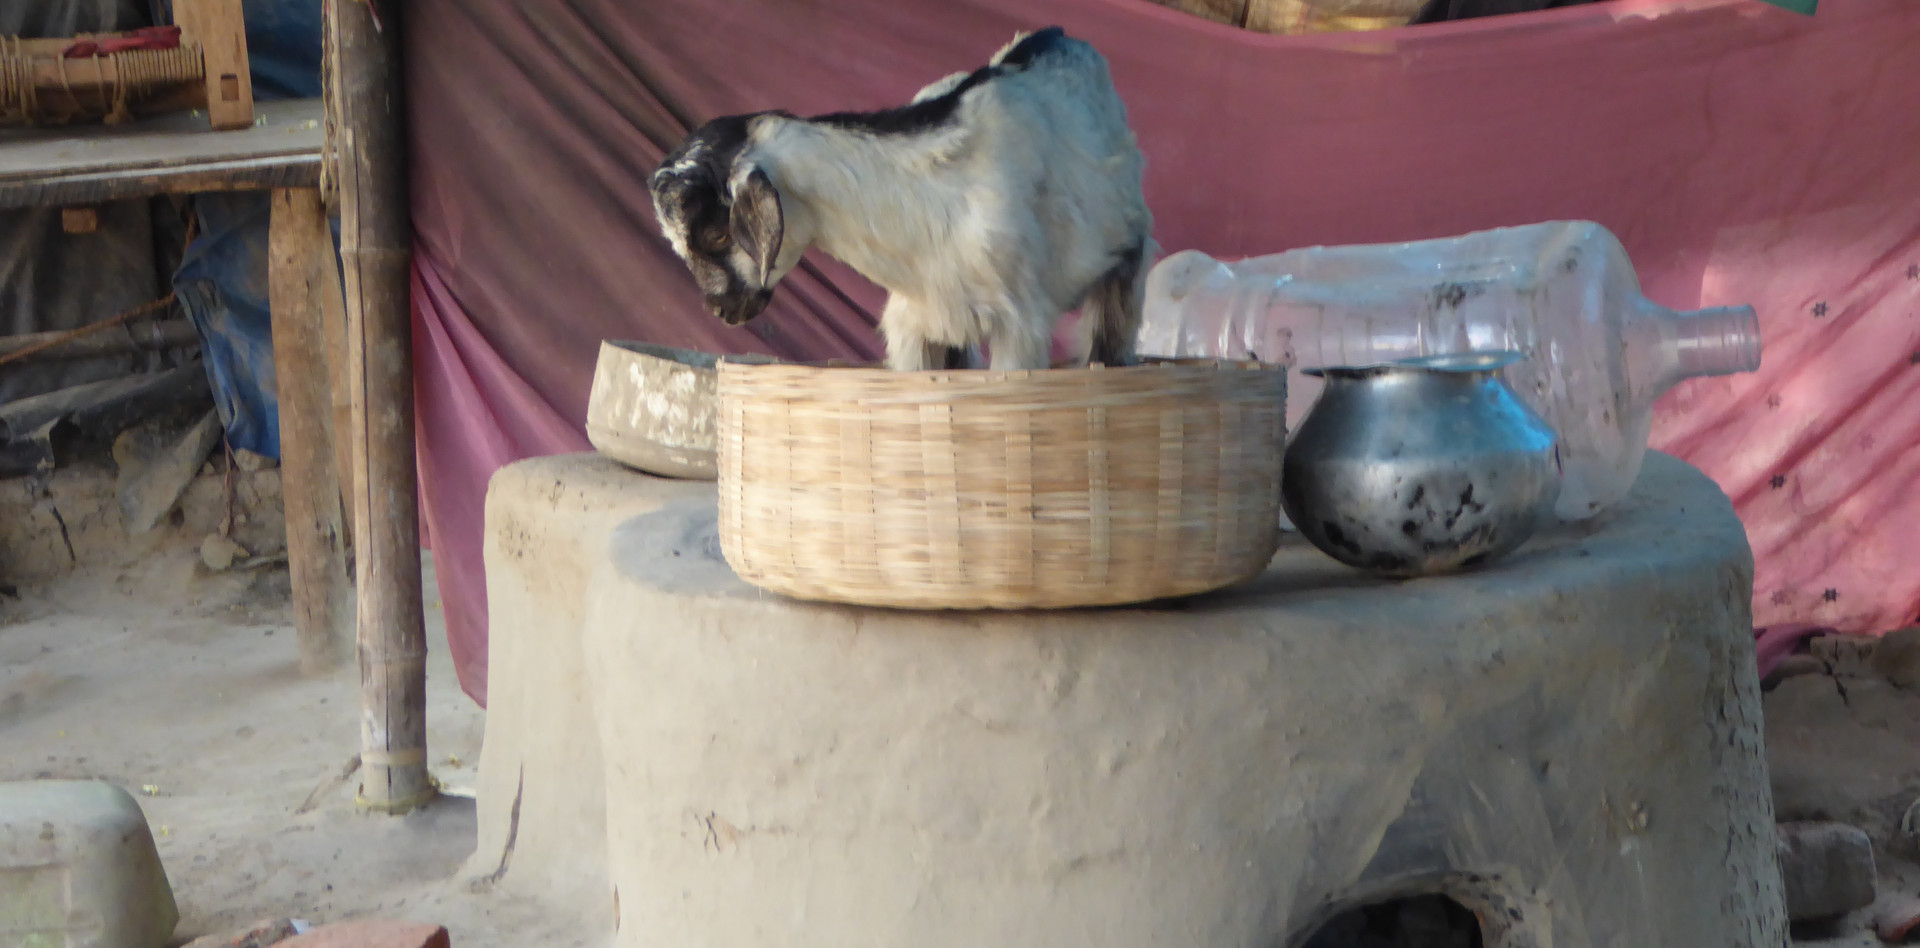 Goat playing